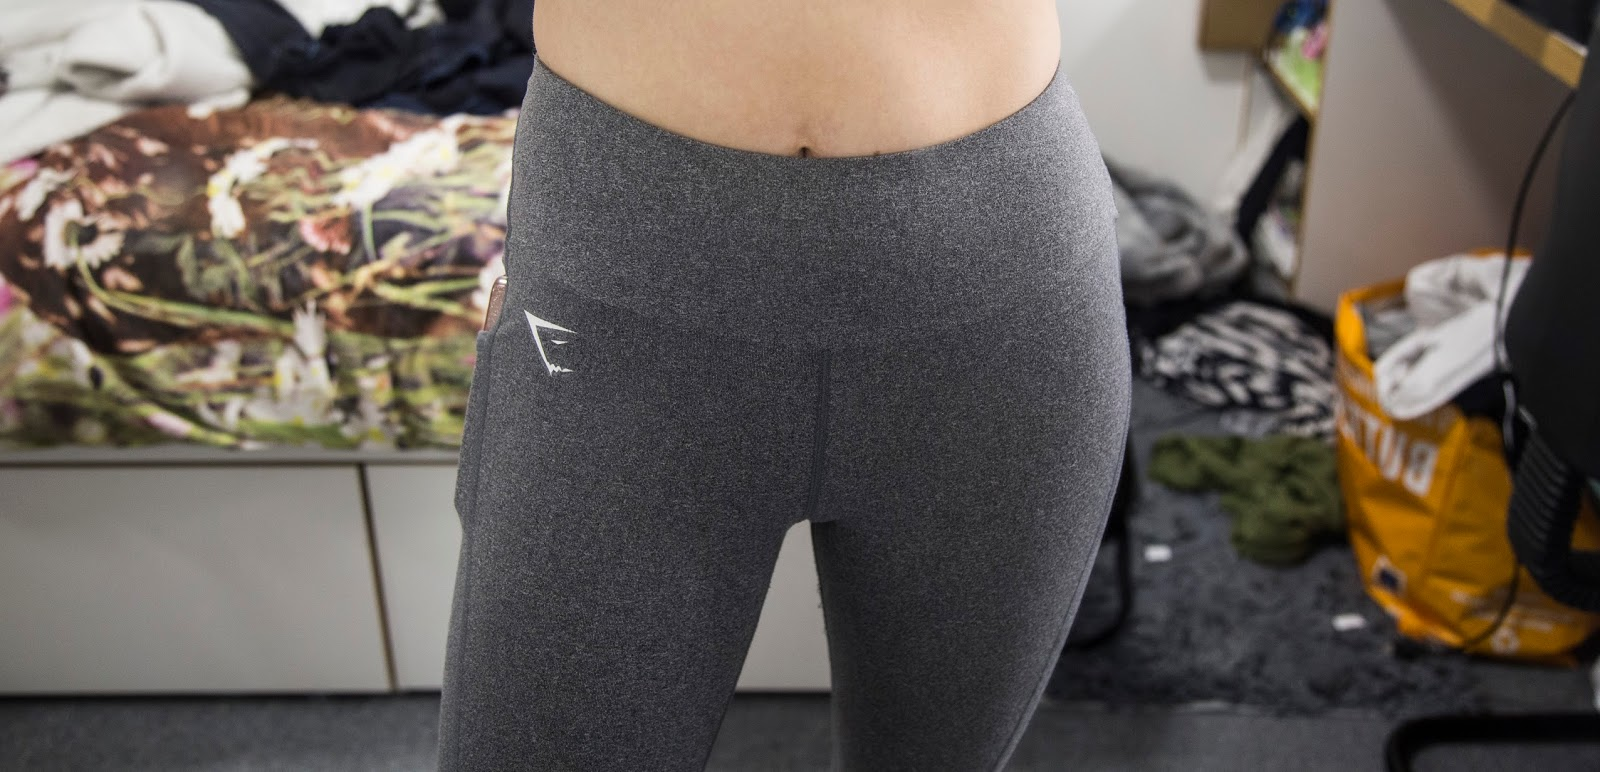 5e34410e203e9 ... the Dry Sculpture leggings and instantly fell in love with how they  looked, they looked thicker, more high waisted and in my opinion more  flattering.